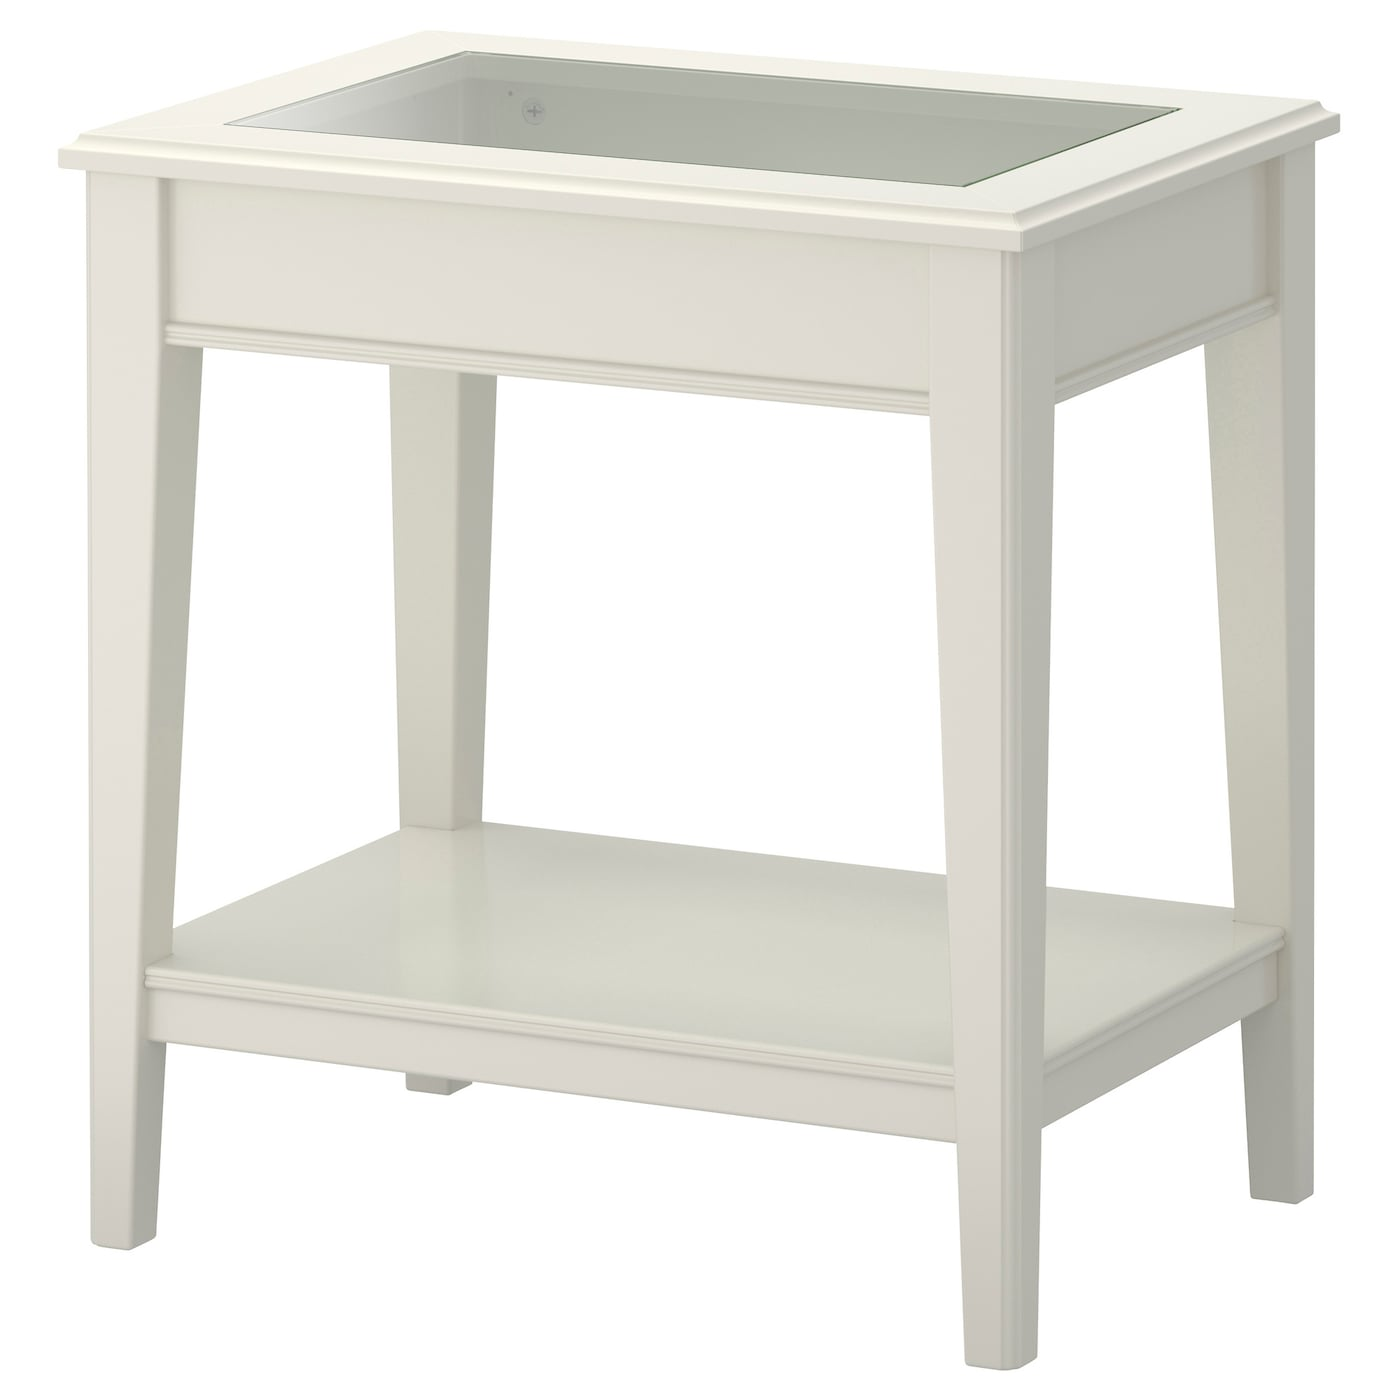 LIATORP Side table White glass 57x40 cm IKEA